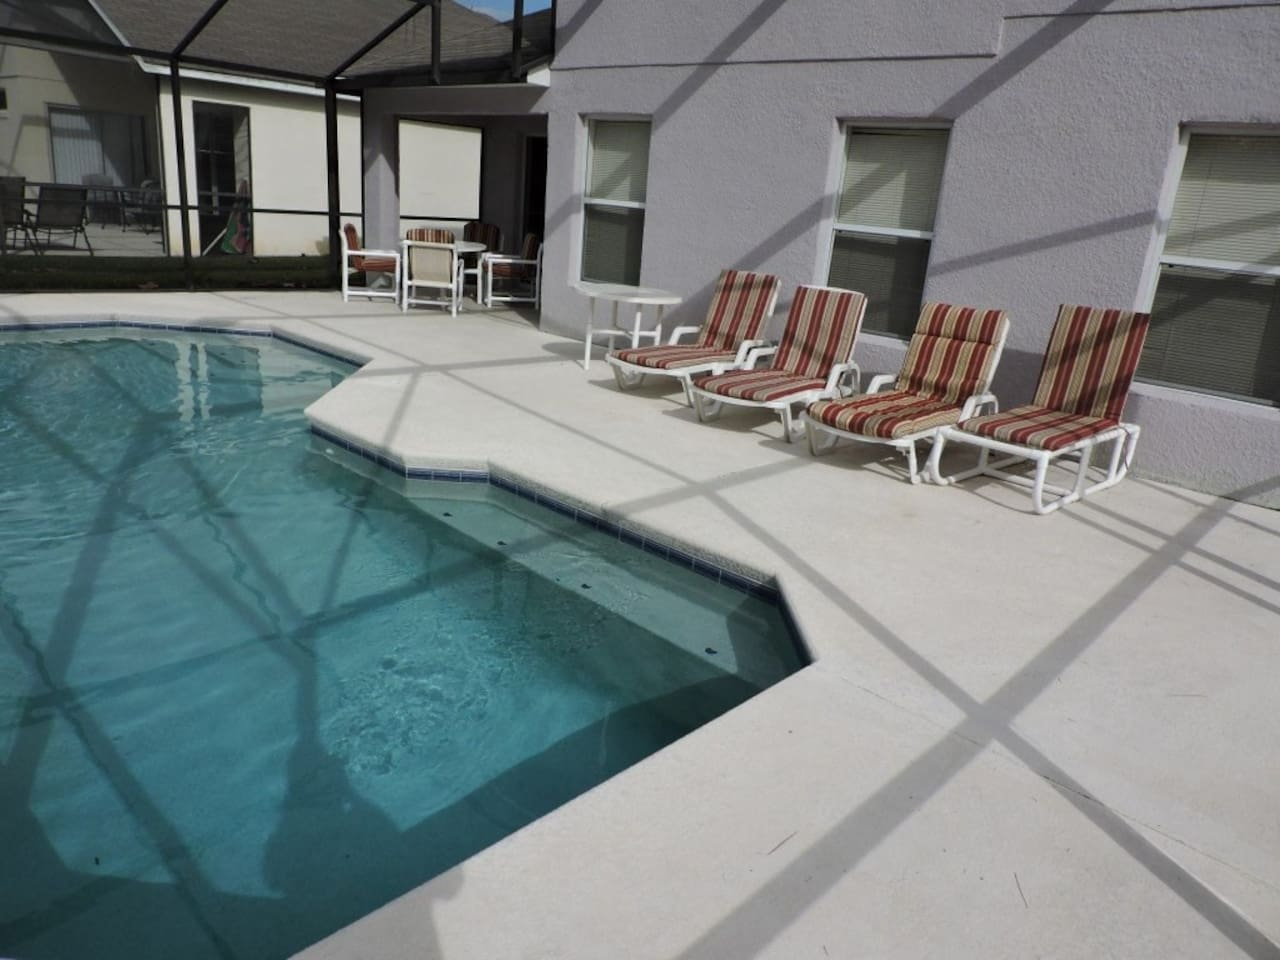 Your own private pool, lots of room for relaxing.